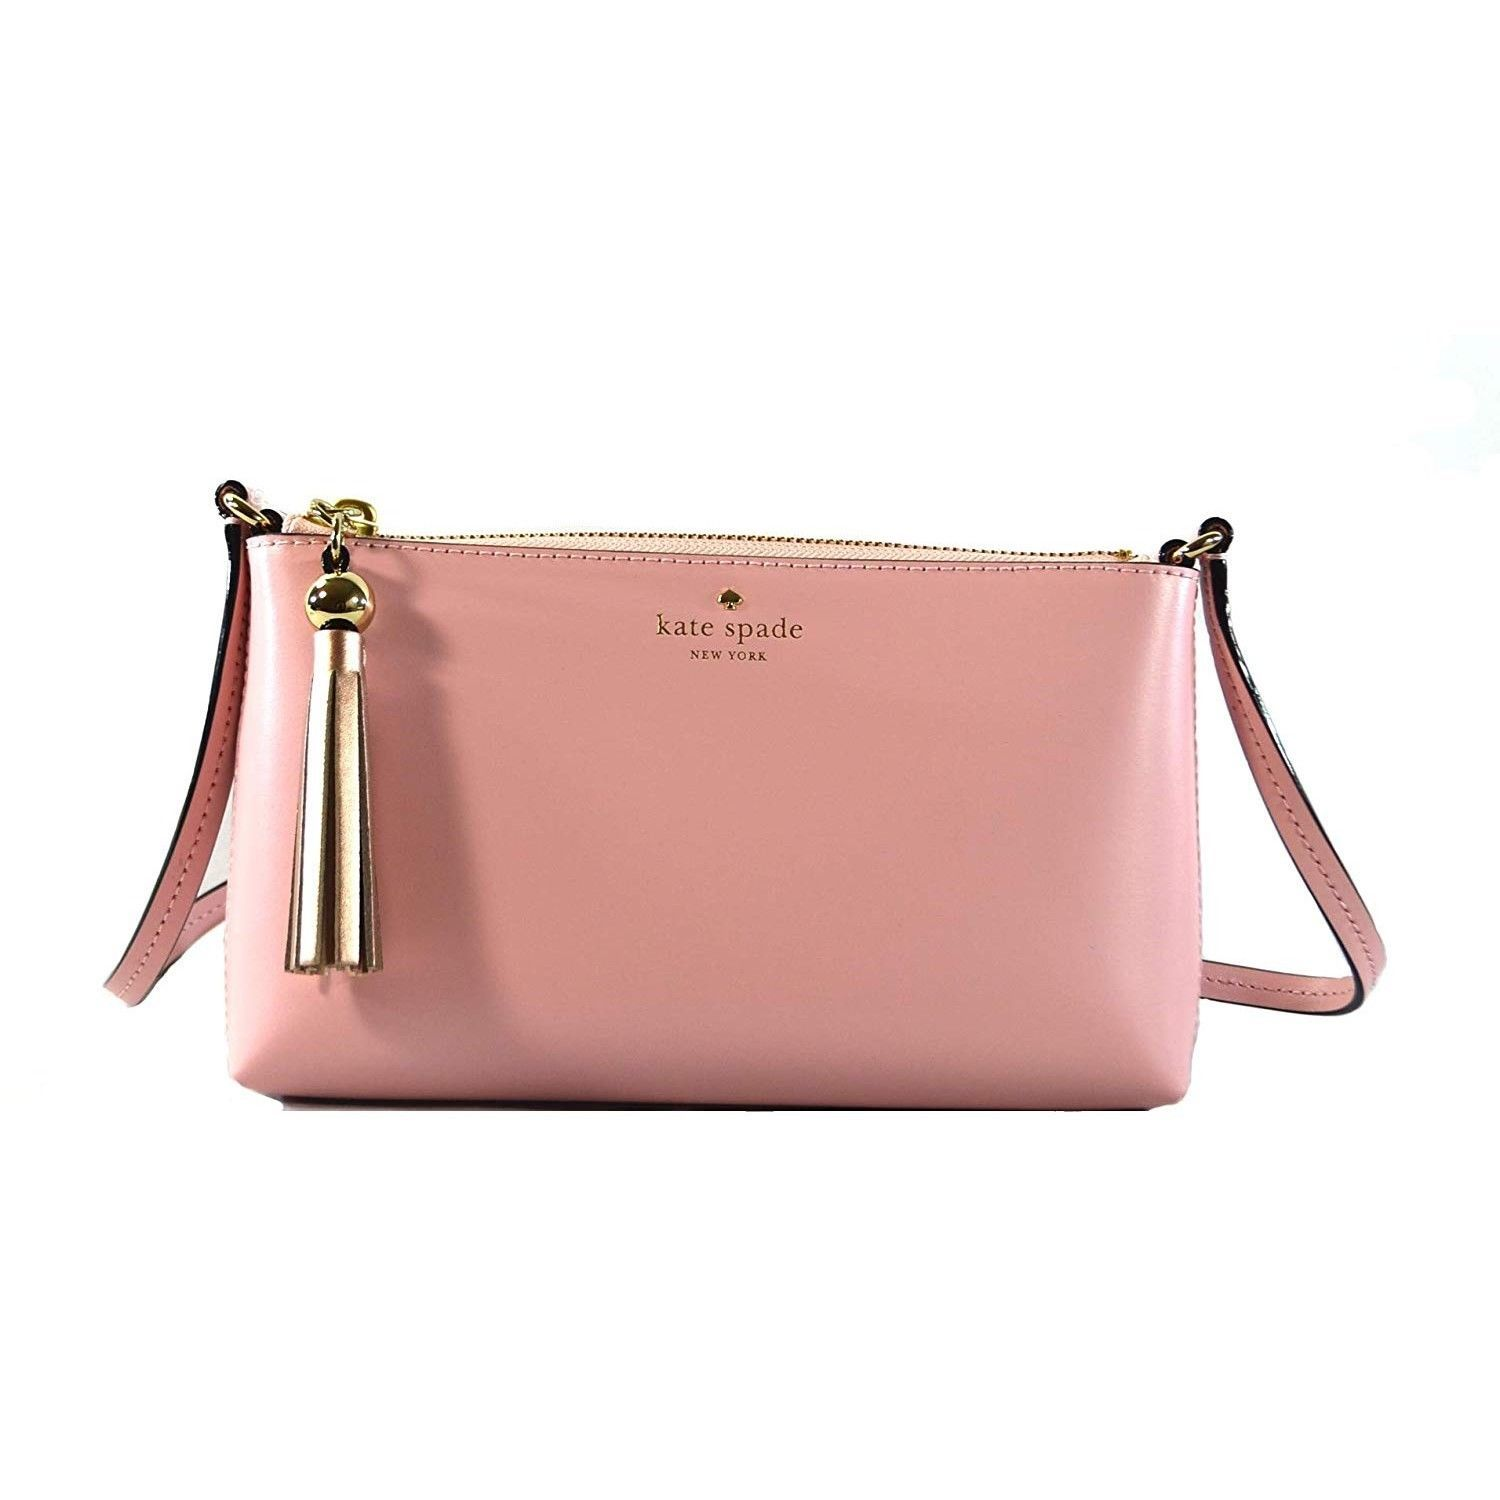 3c4441648d4e7 Nwt Kate Spade New York Ivy Street Amy and 50 similar items. 57